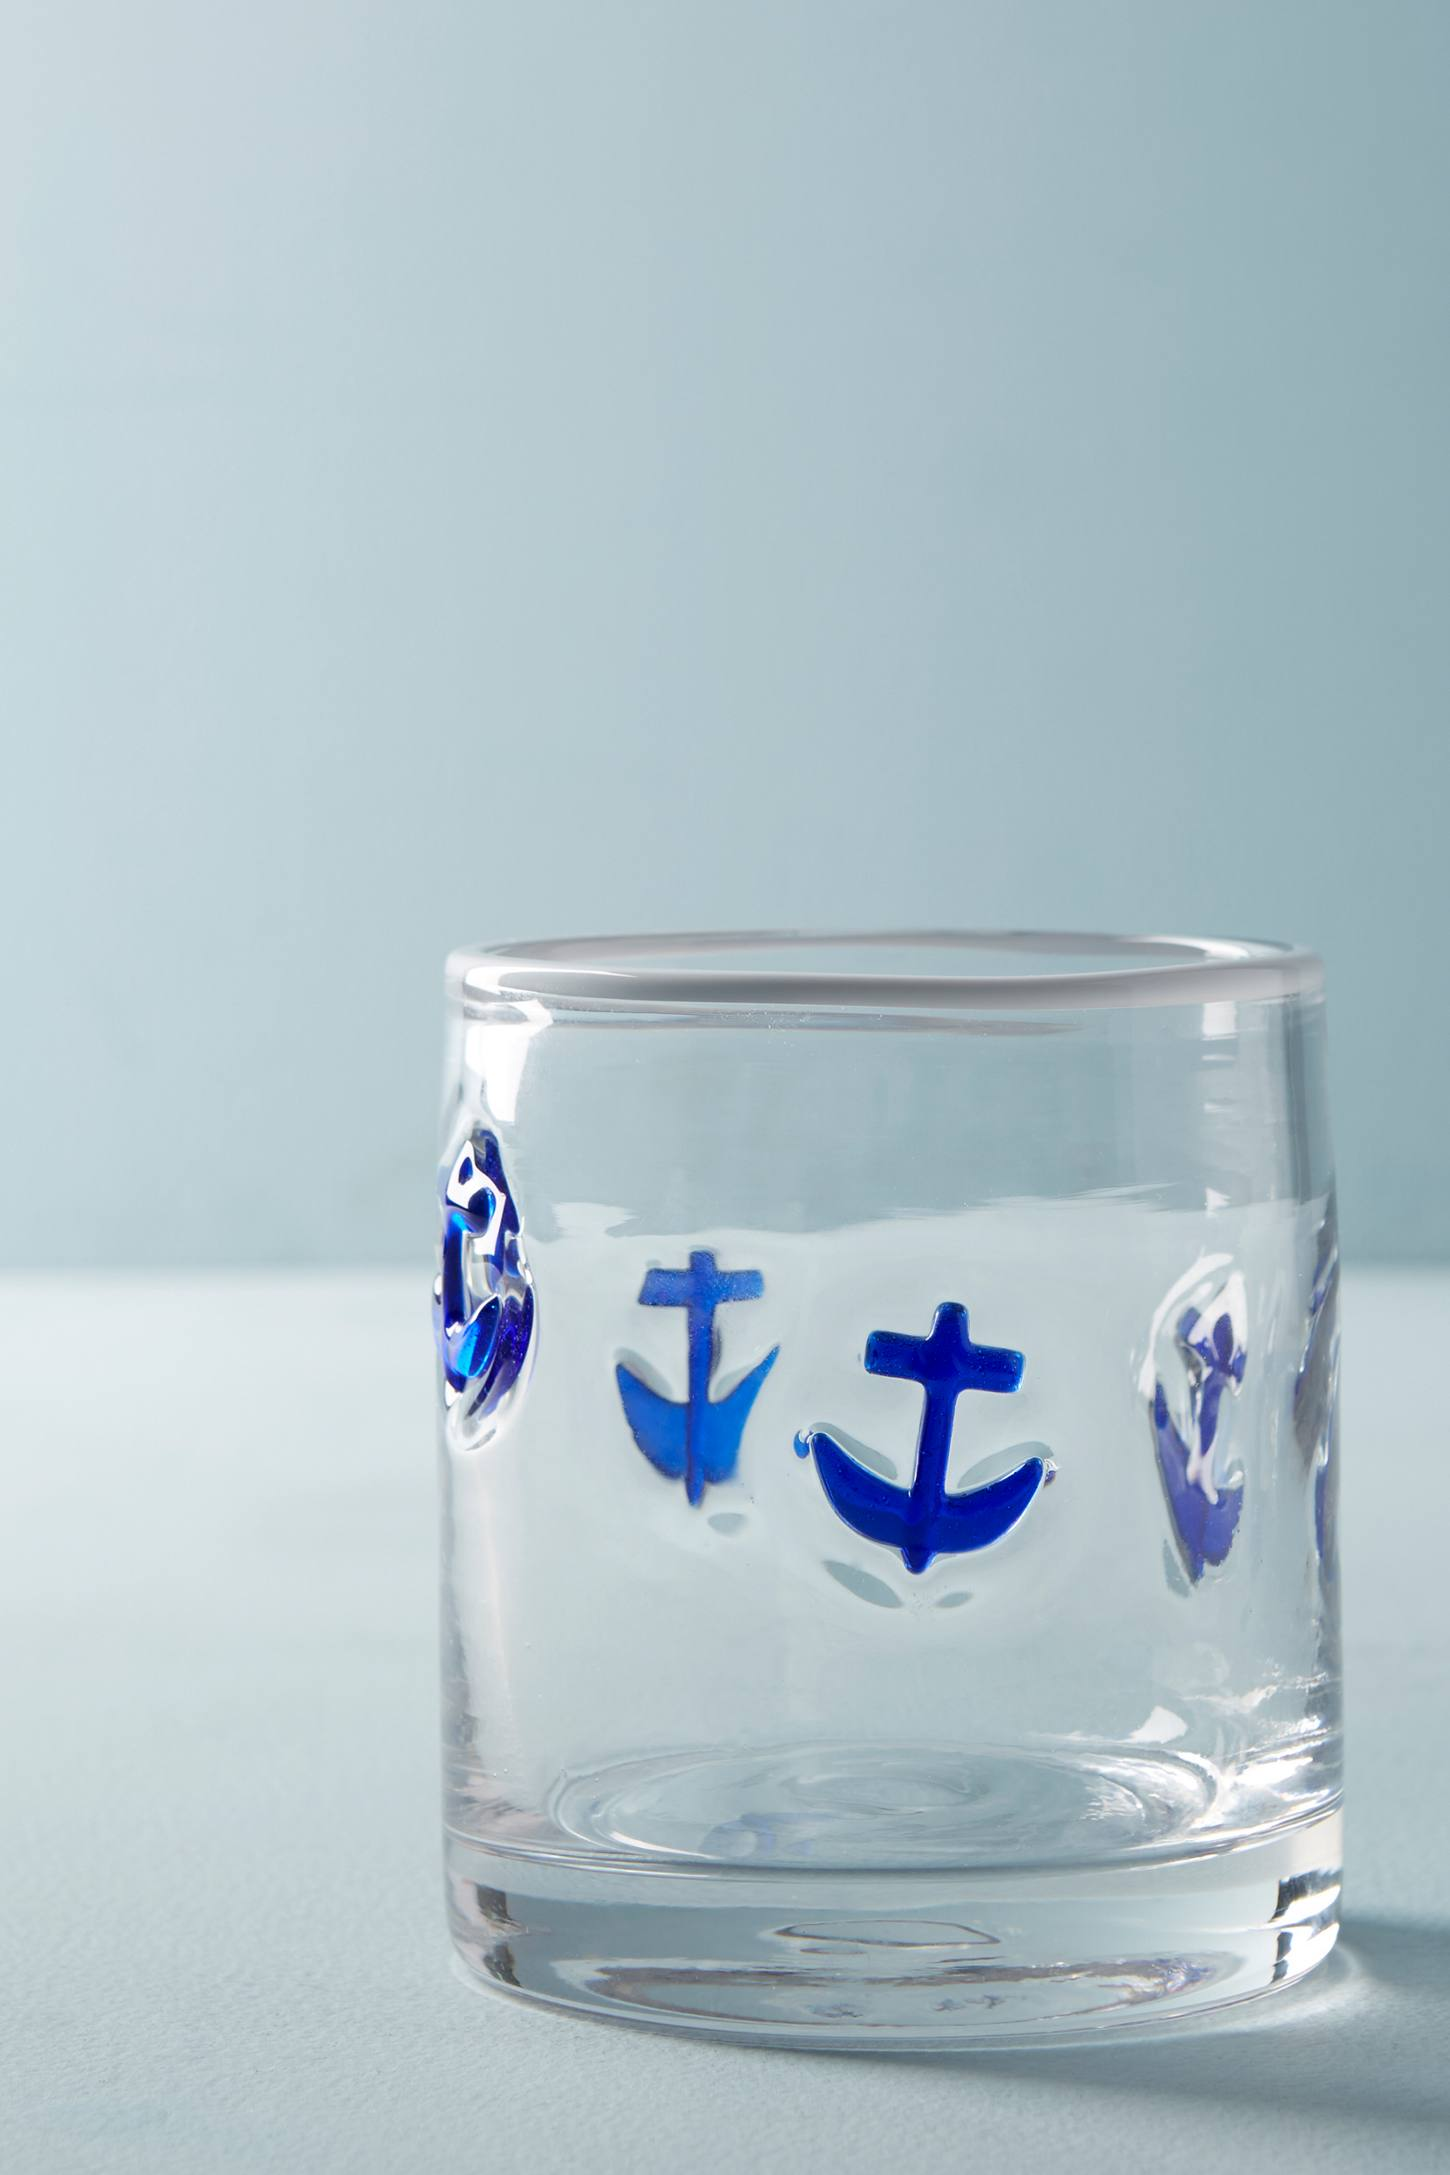 Slide View: 1: Anchor Juice Glass